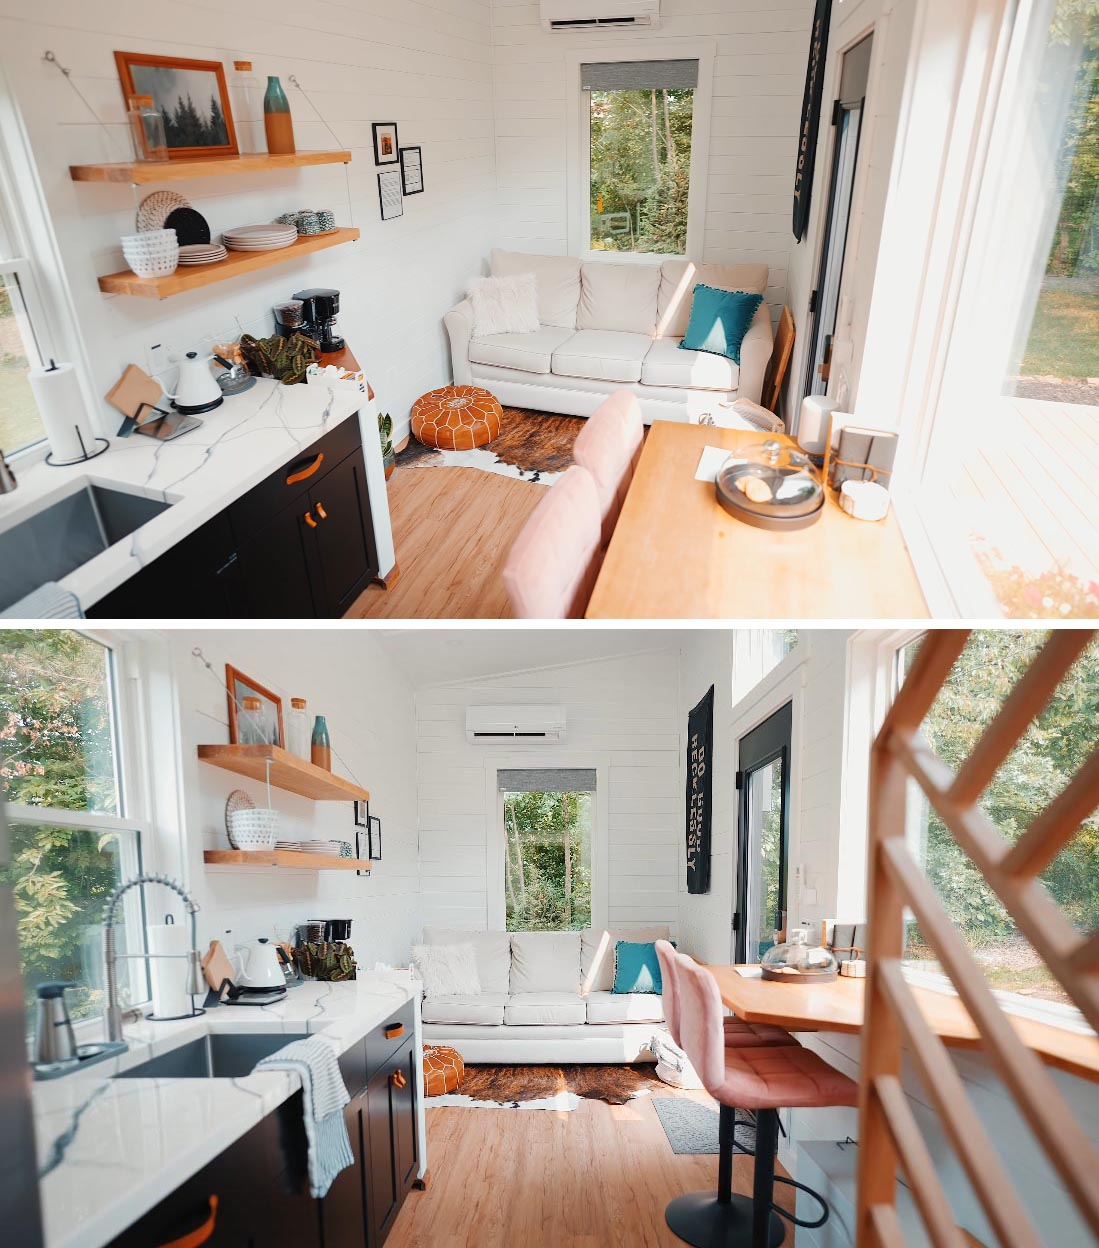 The interior of this Scandinavian-inspired tiny home has 12 foot tall ceilings make the space feel roomy and spacious, like in the living room that's been furnished with a light colored couch and a leather  ottoman.